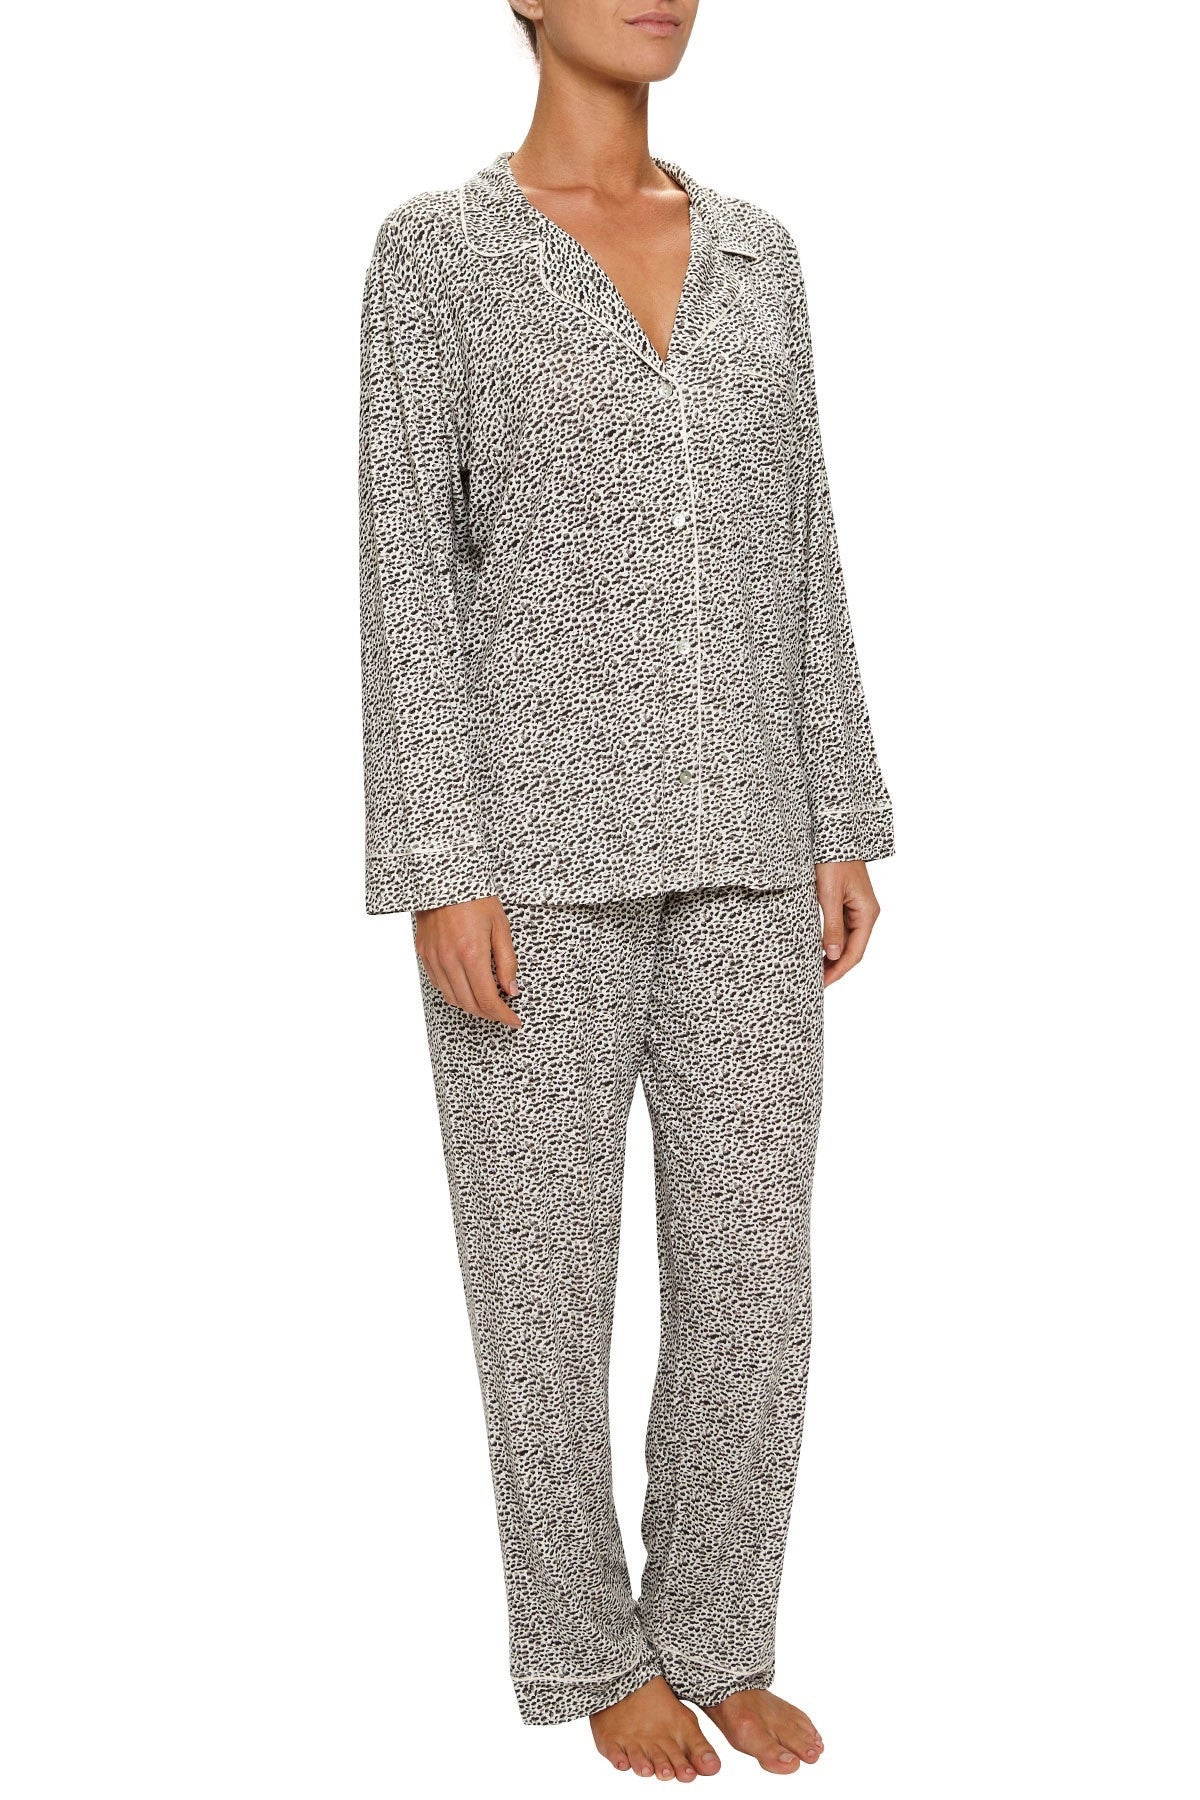 Sleep Chic PJ set - Knickers & Pearls Boutique - 5